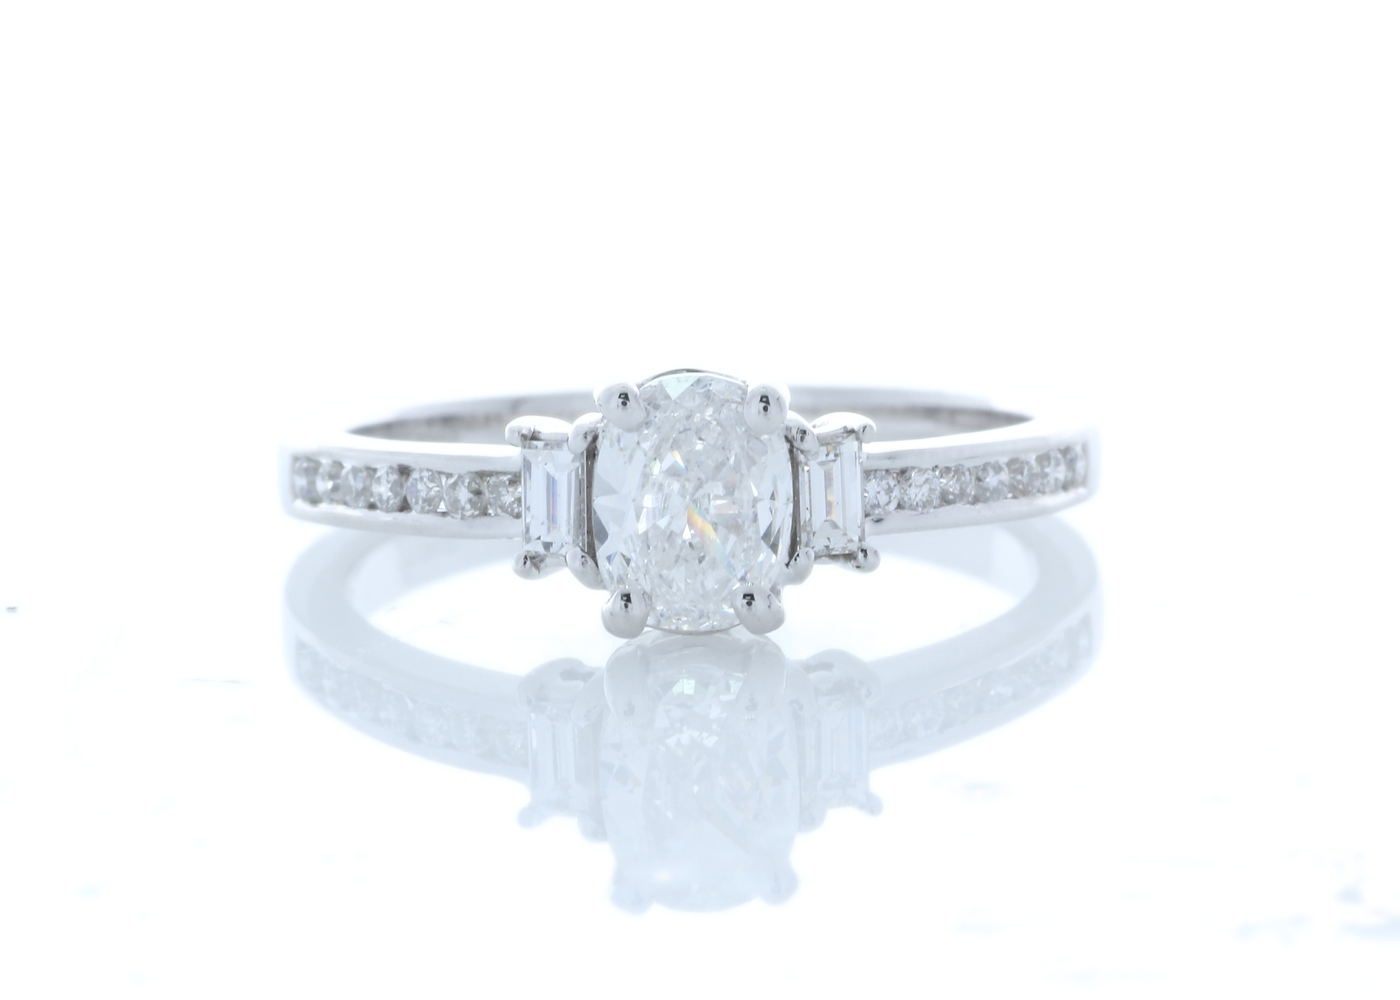 18ct White Gold Stone Set Shoulders Diamond Ring 0.74 Carats